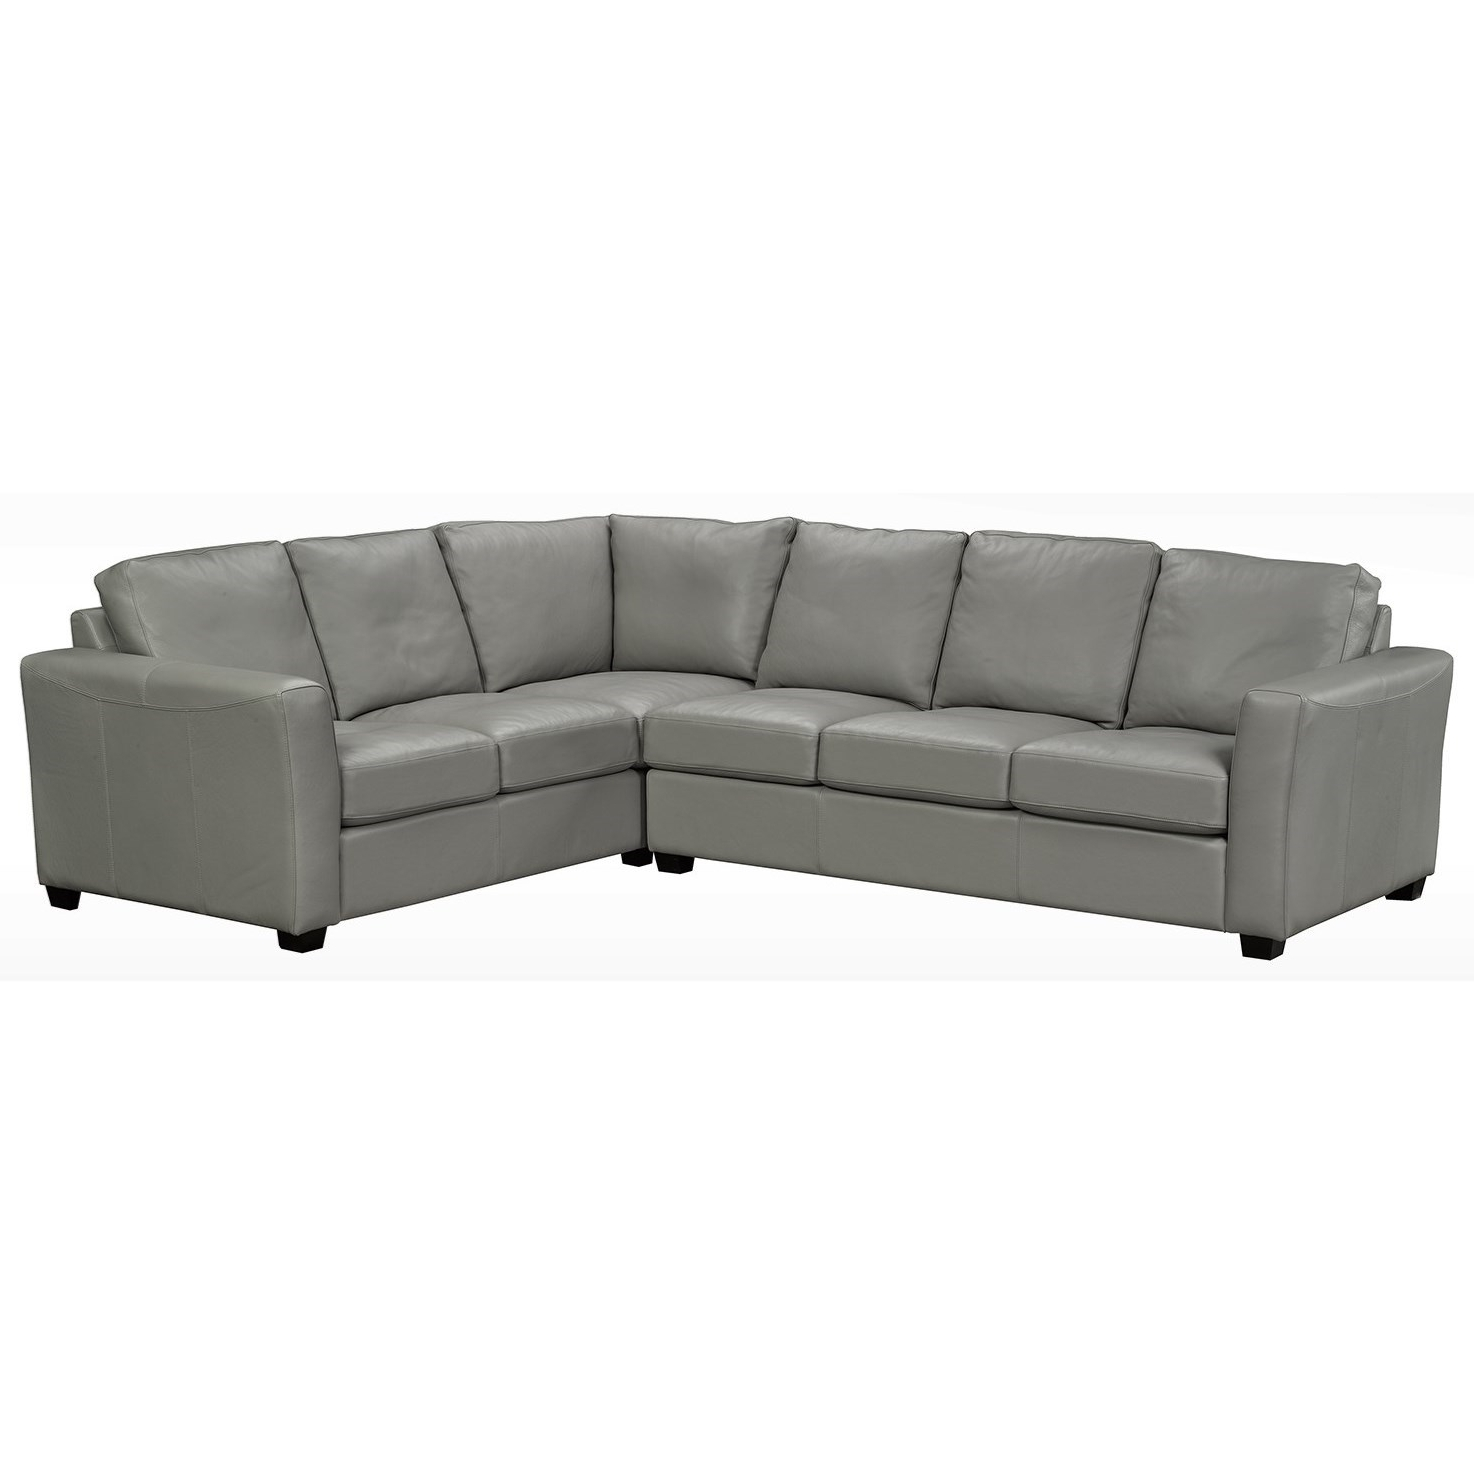 Sectional Sofas (View 3 of 20)